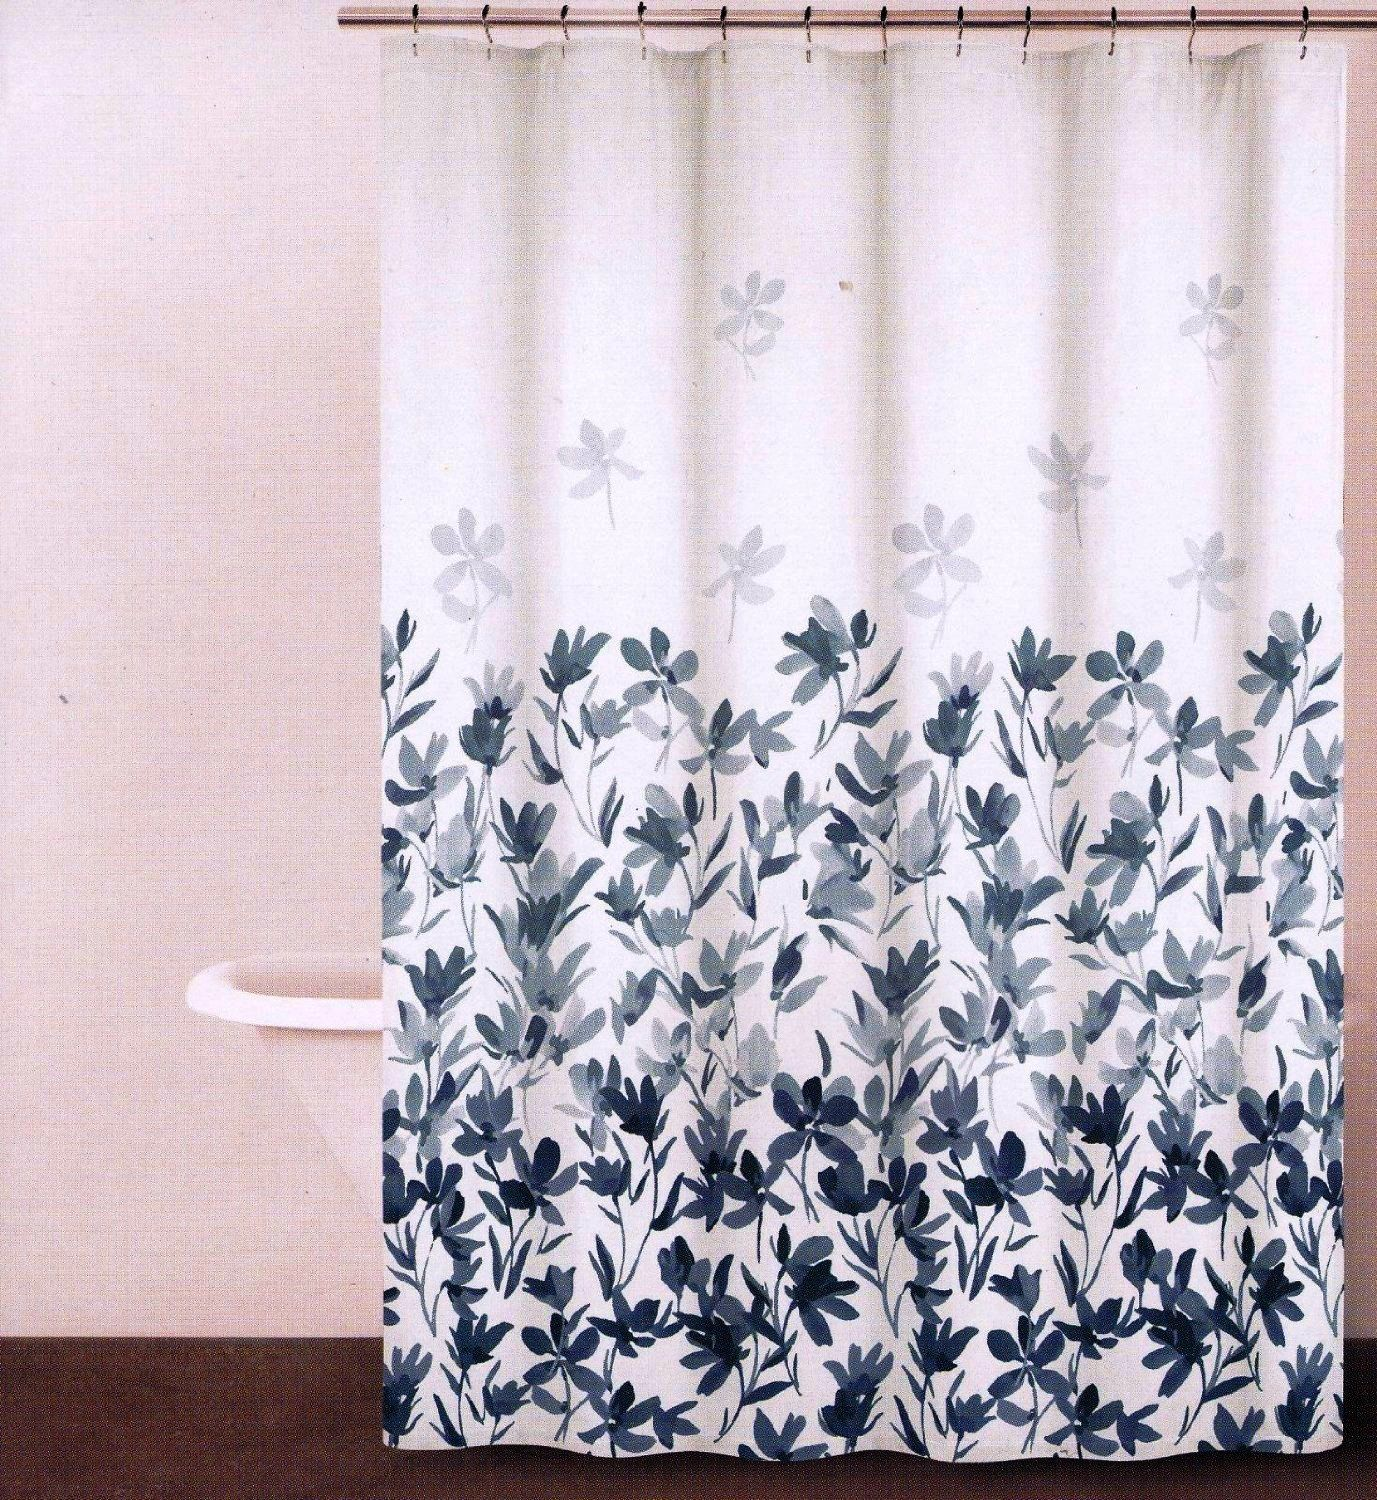 Dkny Garden Splash Periwinkle Blue White Floral Fabric Shower Curtain From Amazon Http Www Amazon Com Gp